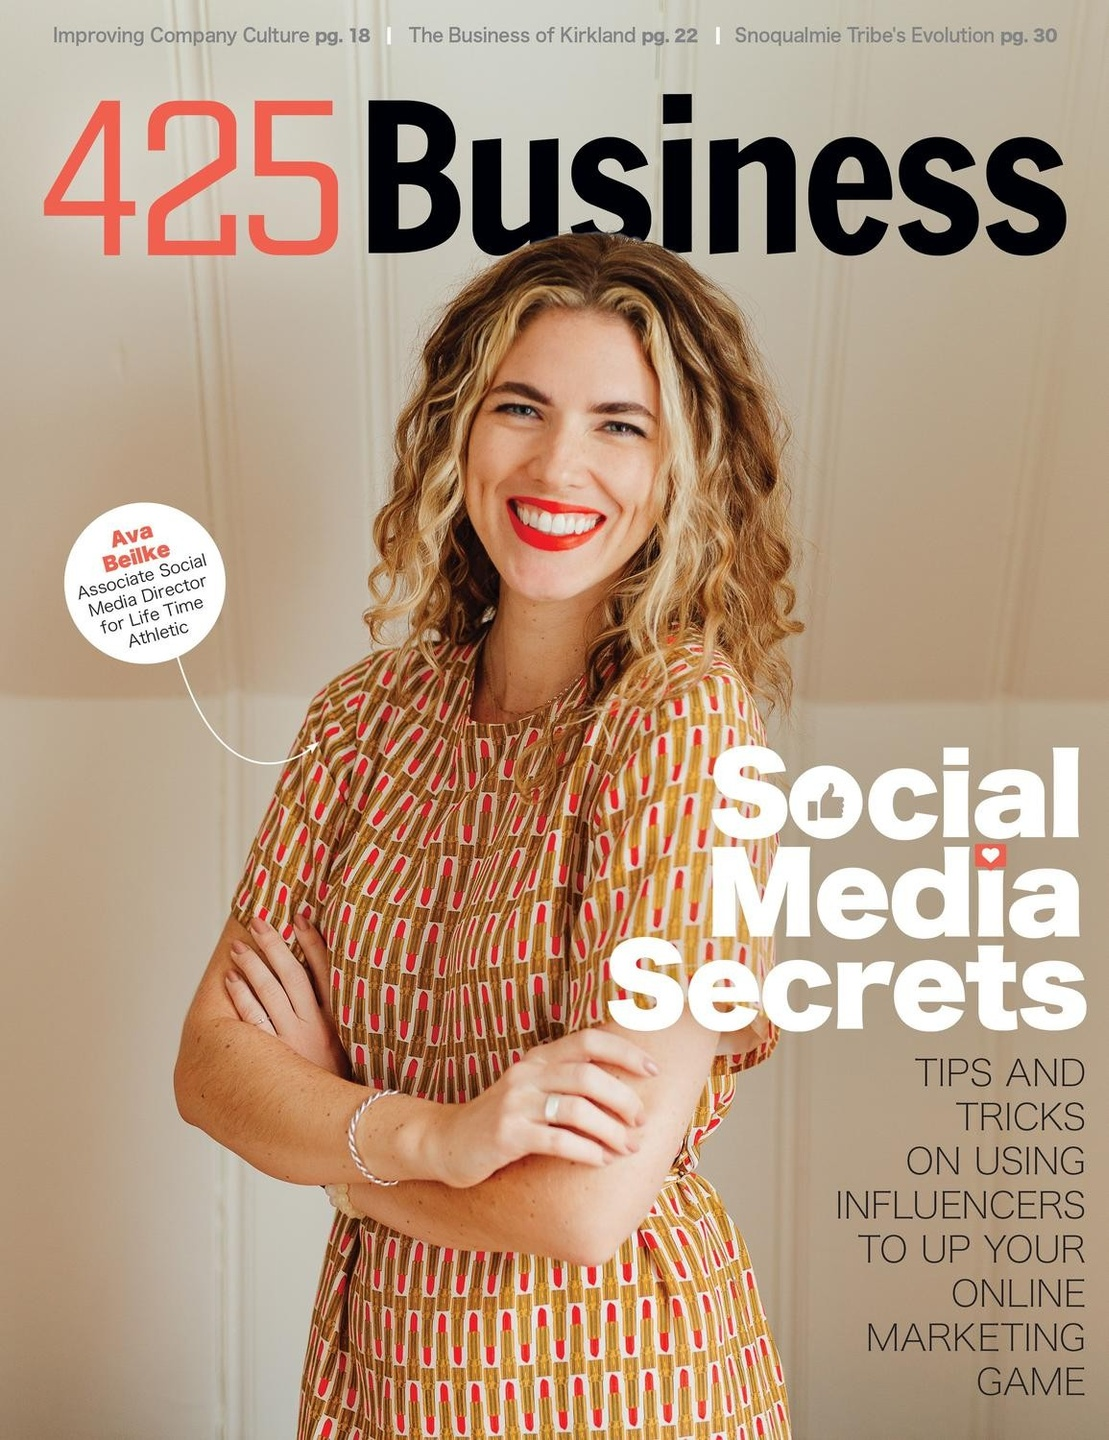 Ava Beilke pictured on the cover of 425 Business Magazine